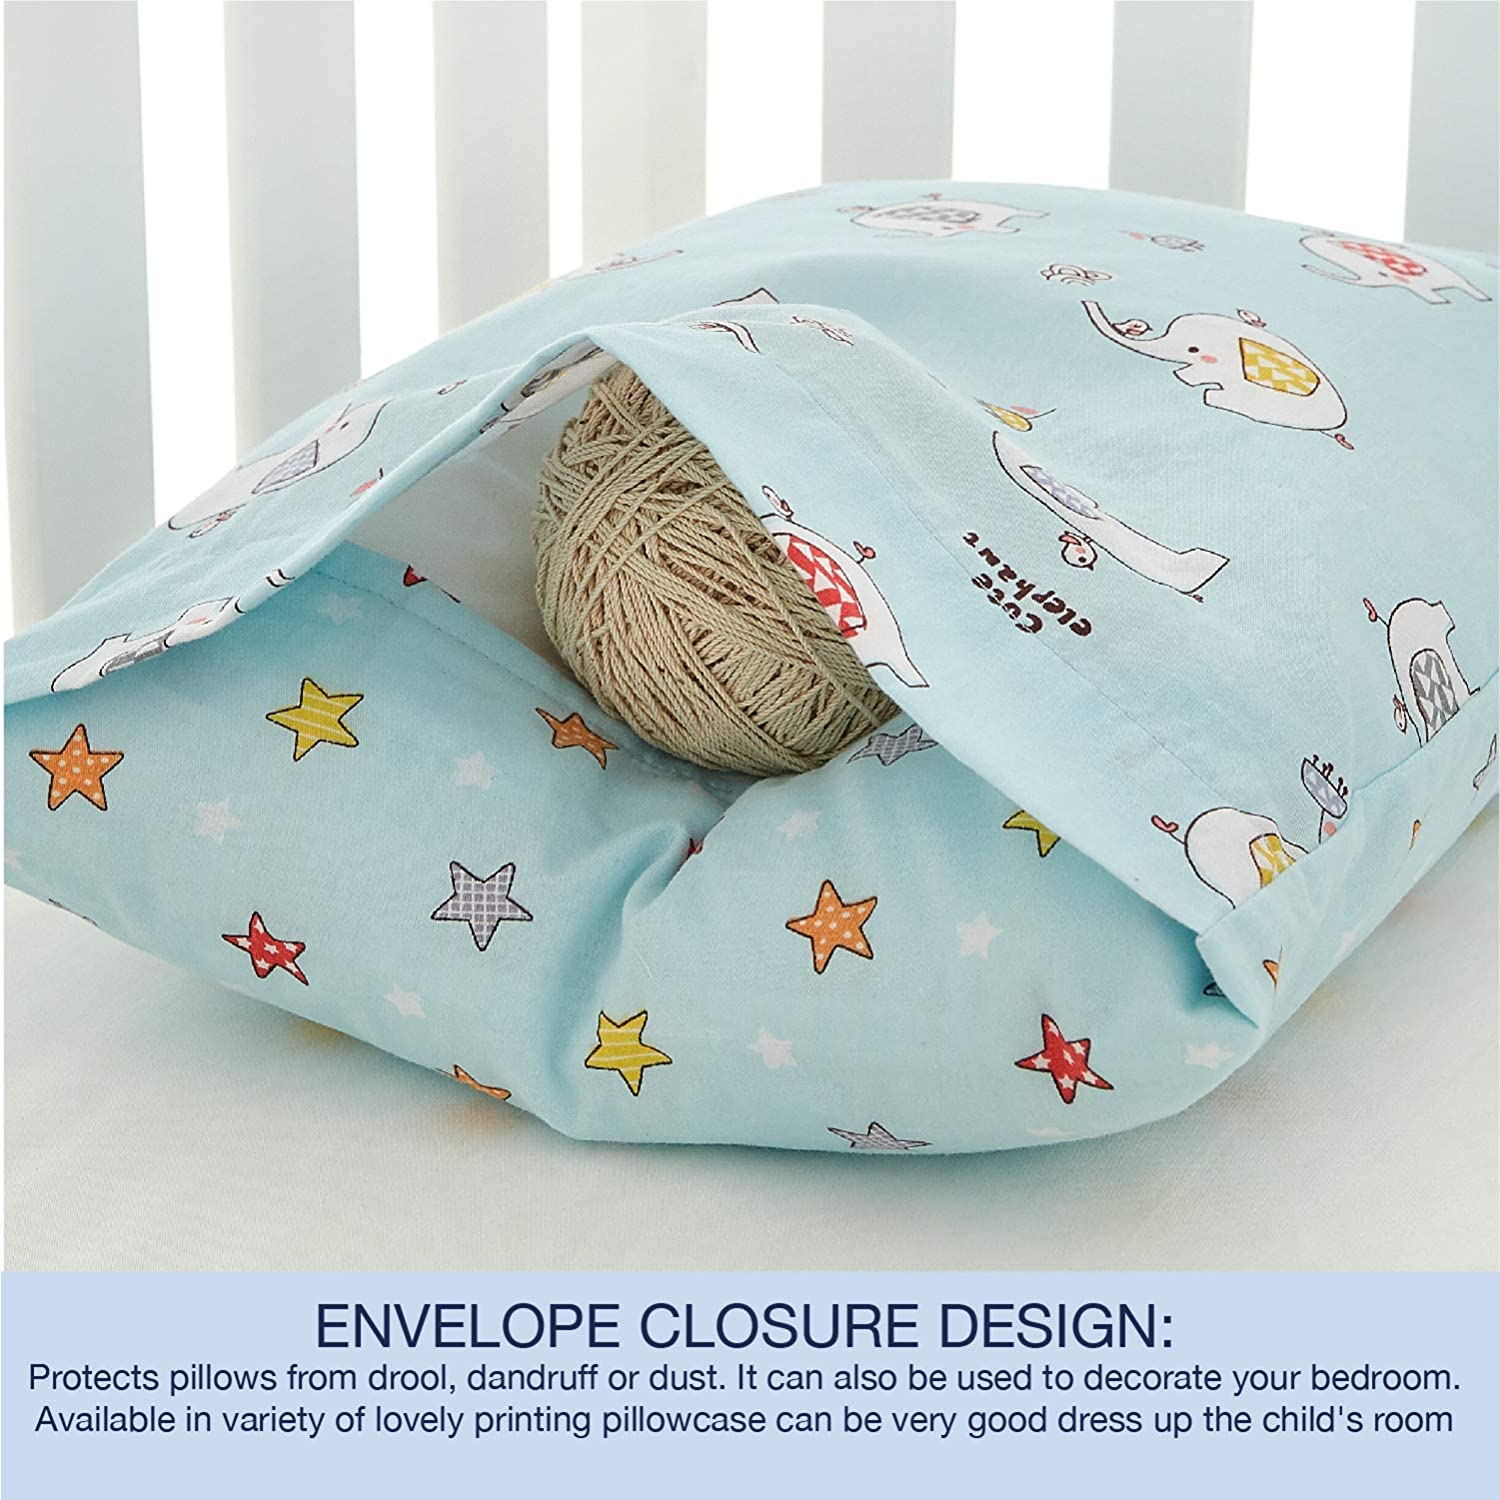 EXQ Home Toddler Pillowcases 14x20 Cotton Travel Pillow Case Set of 2,Small Pillow Case Fits Baby Pillows Sized 12x16 Machine Washable Baby Pillow Case with Envelope Closure Cats Family 13x18